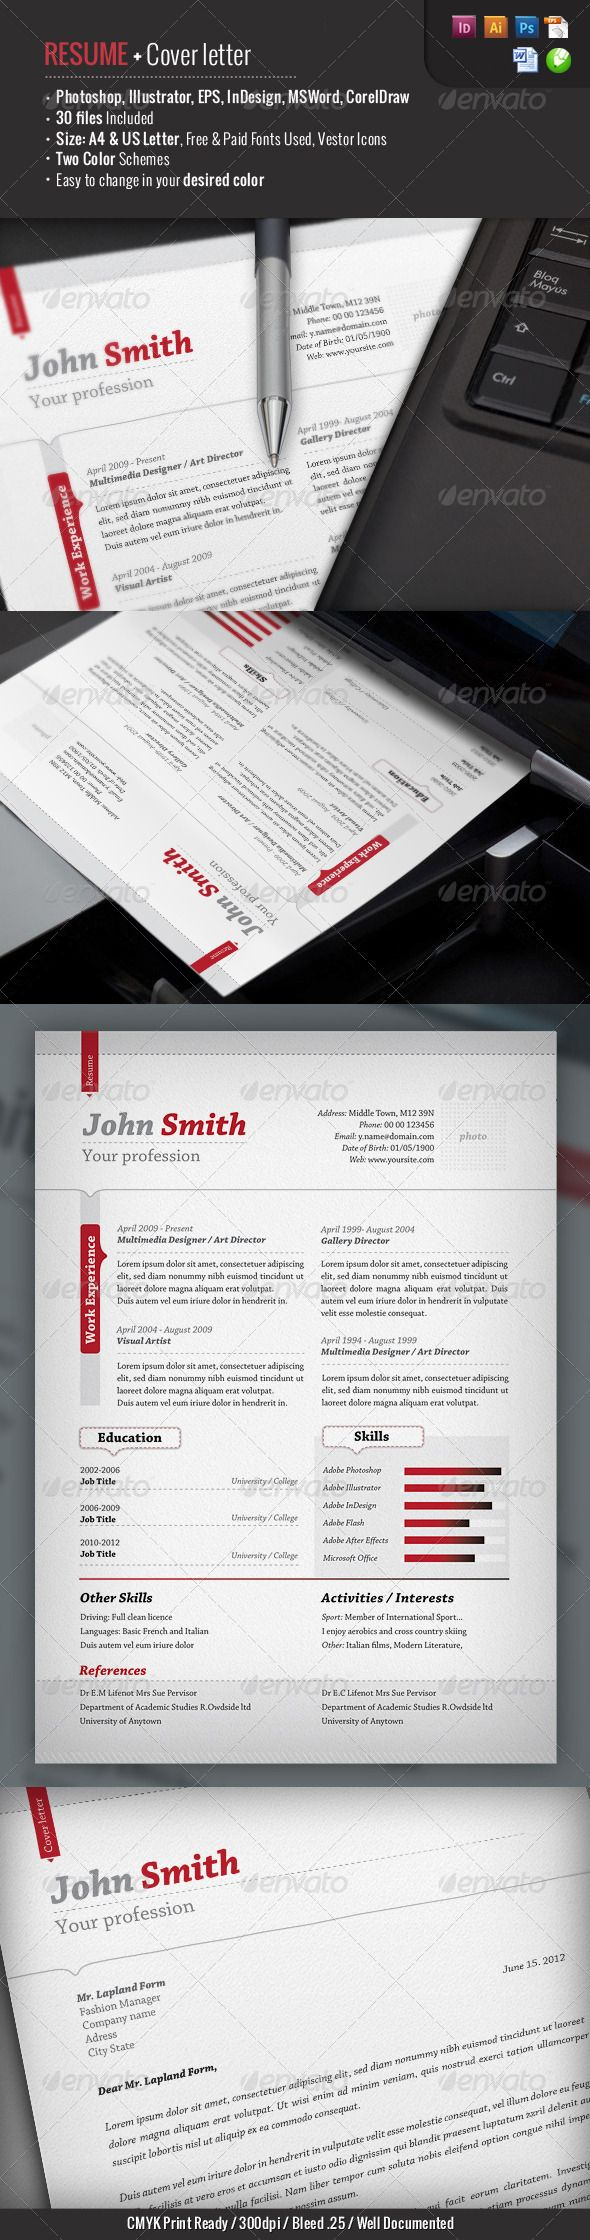 Resume Cover Letter 19 best resume